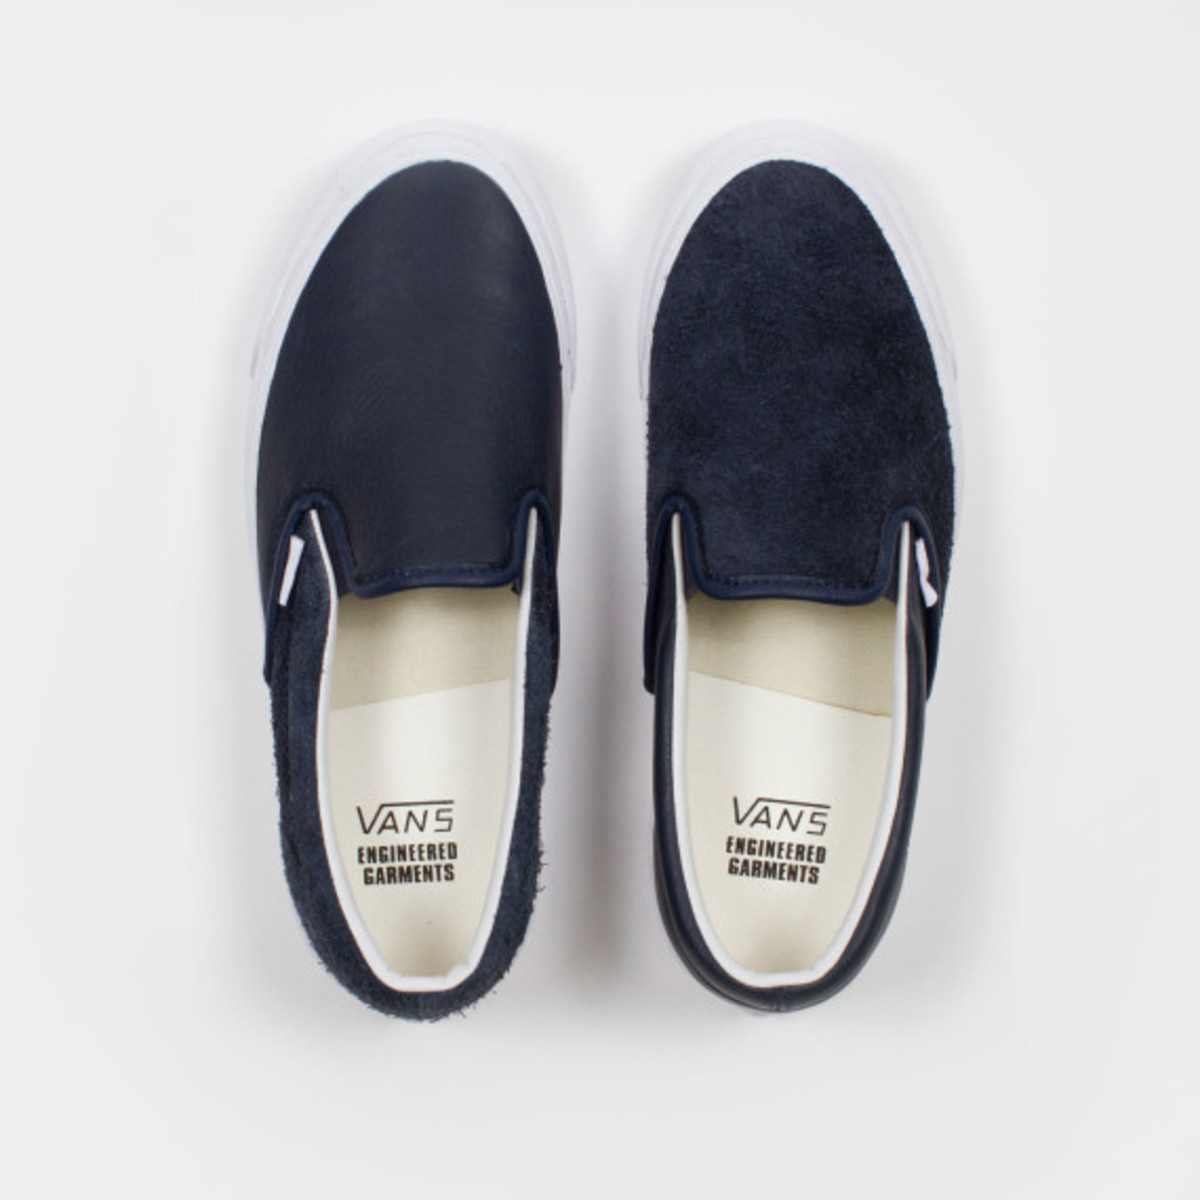 engineered-garments-vault-by-vans-collection-launch-at-nepenthes-05